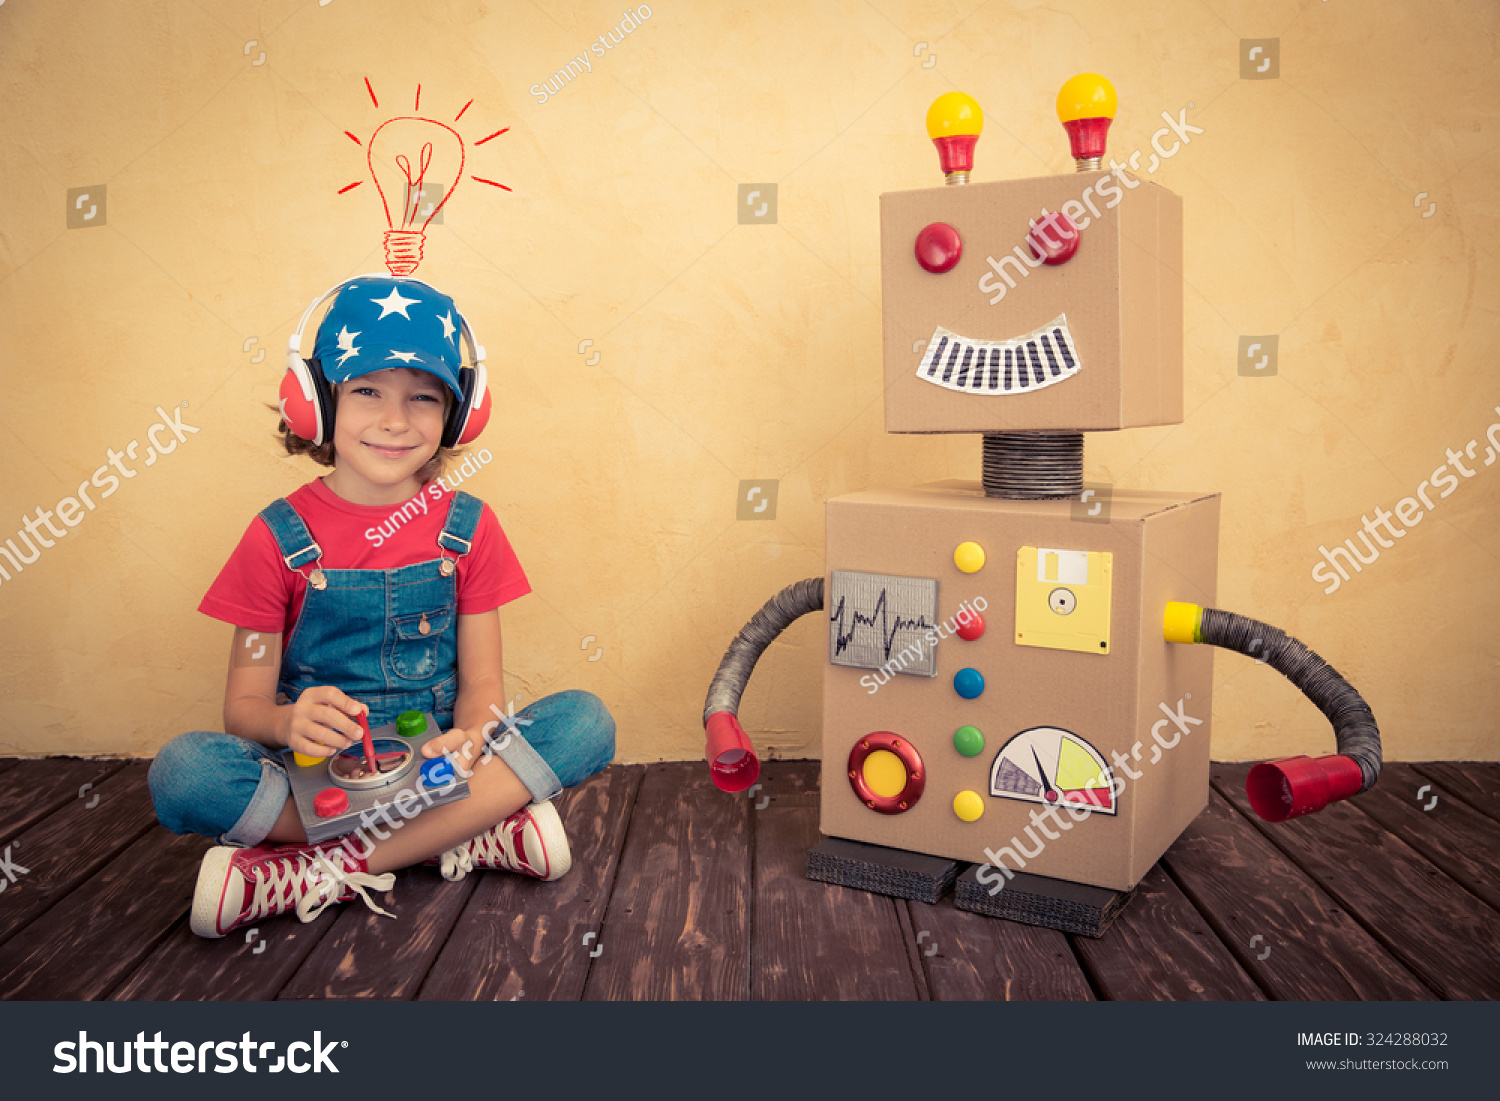 Happy kid playing with toy robot at home. Retro toned  sc 1 st  Shutterstock & Happy Kid Playing Toy Robot Home Stock Photo (100% Legal Protection ...